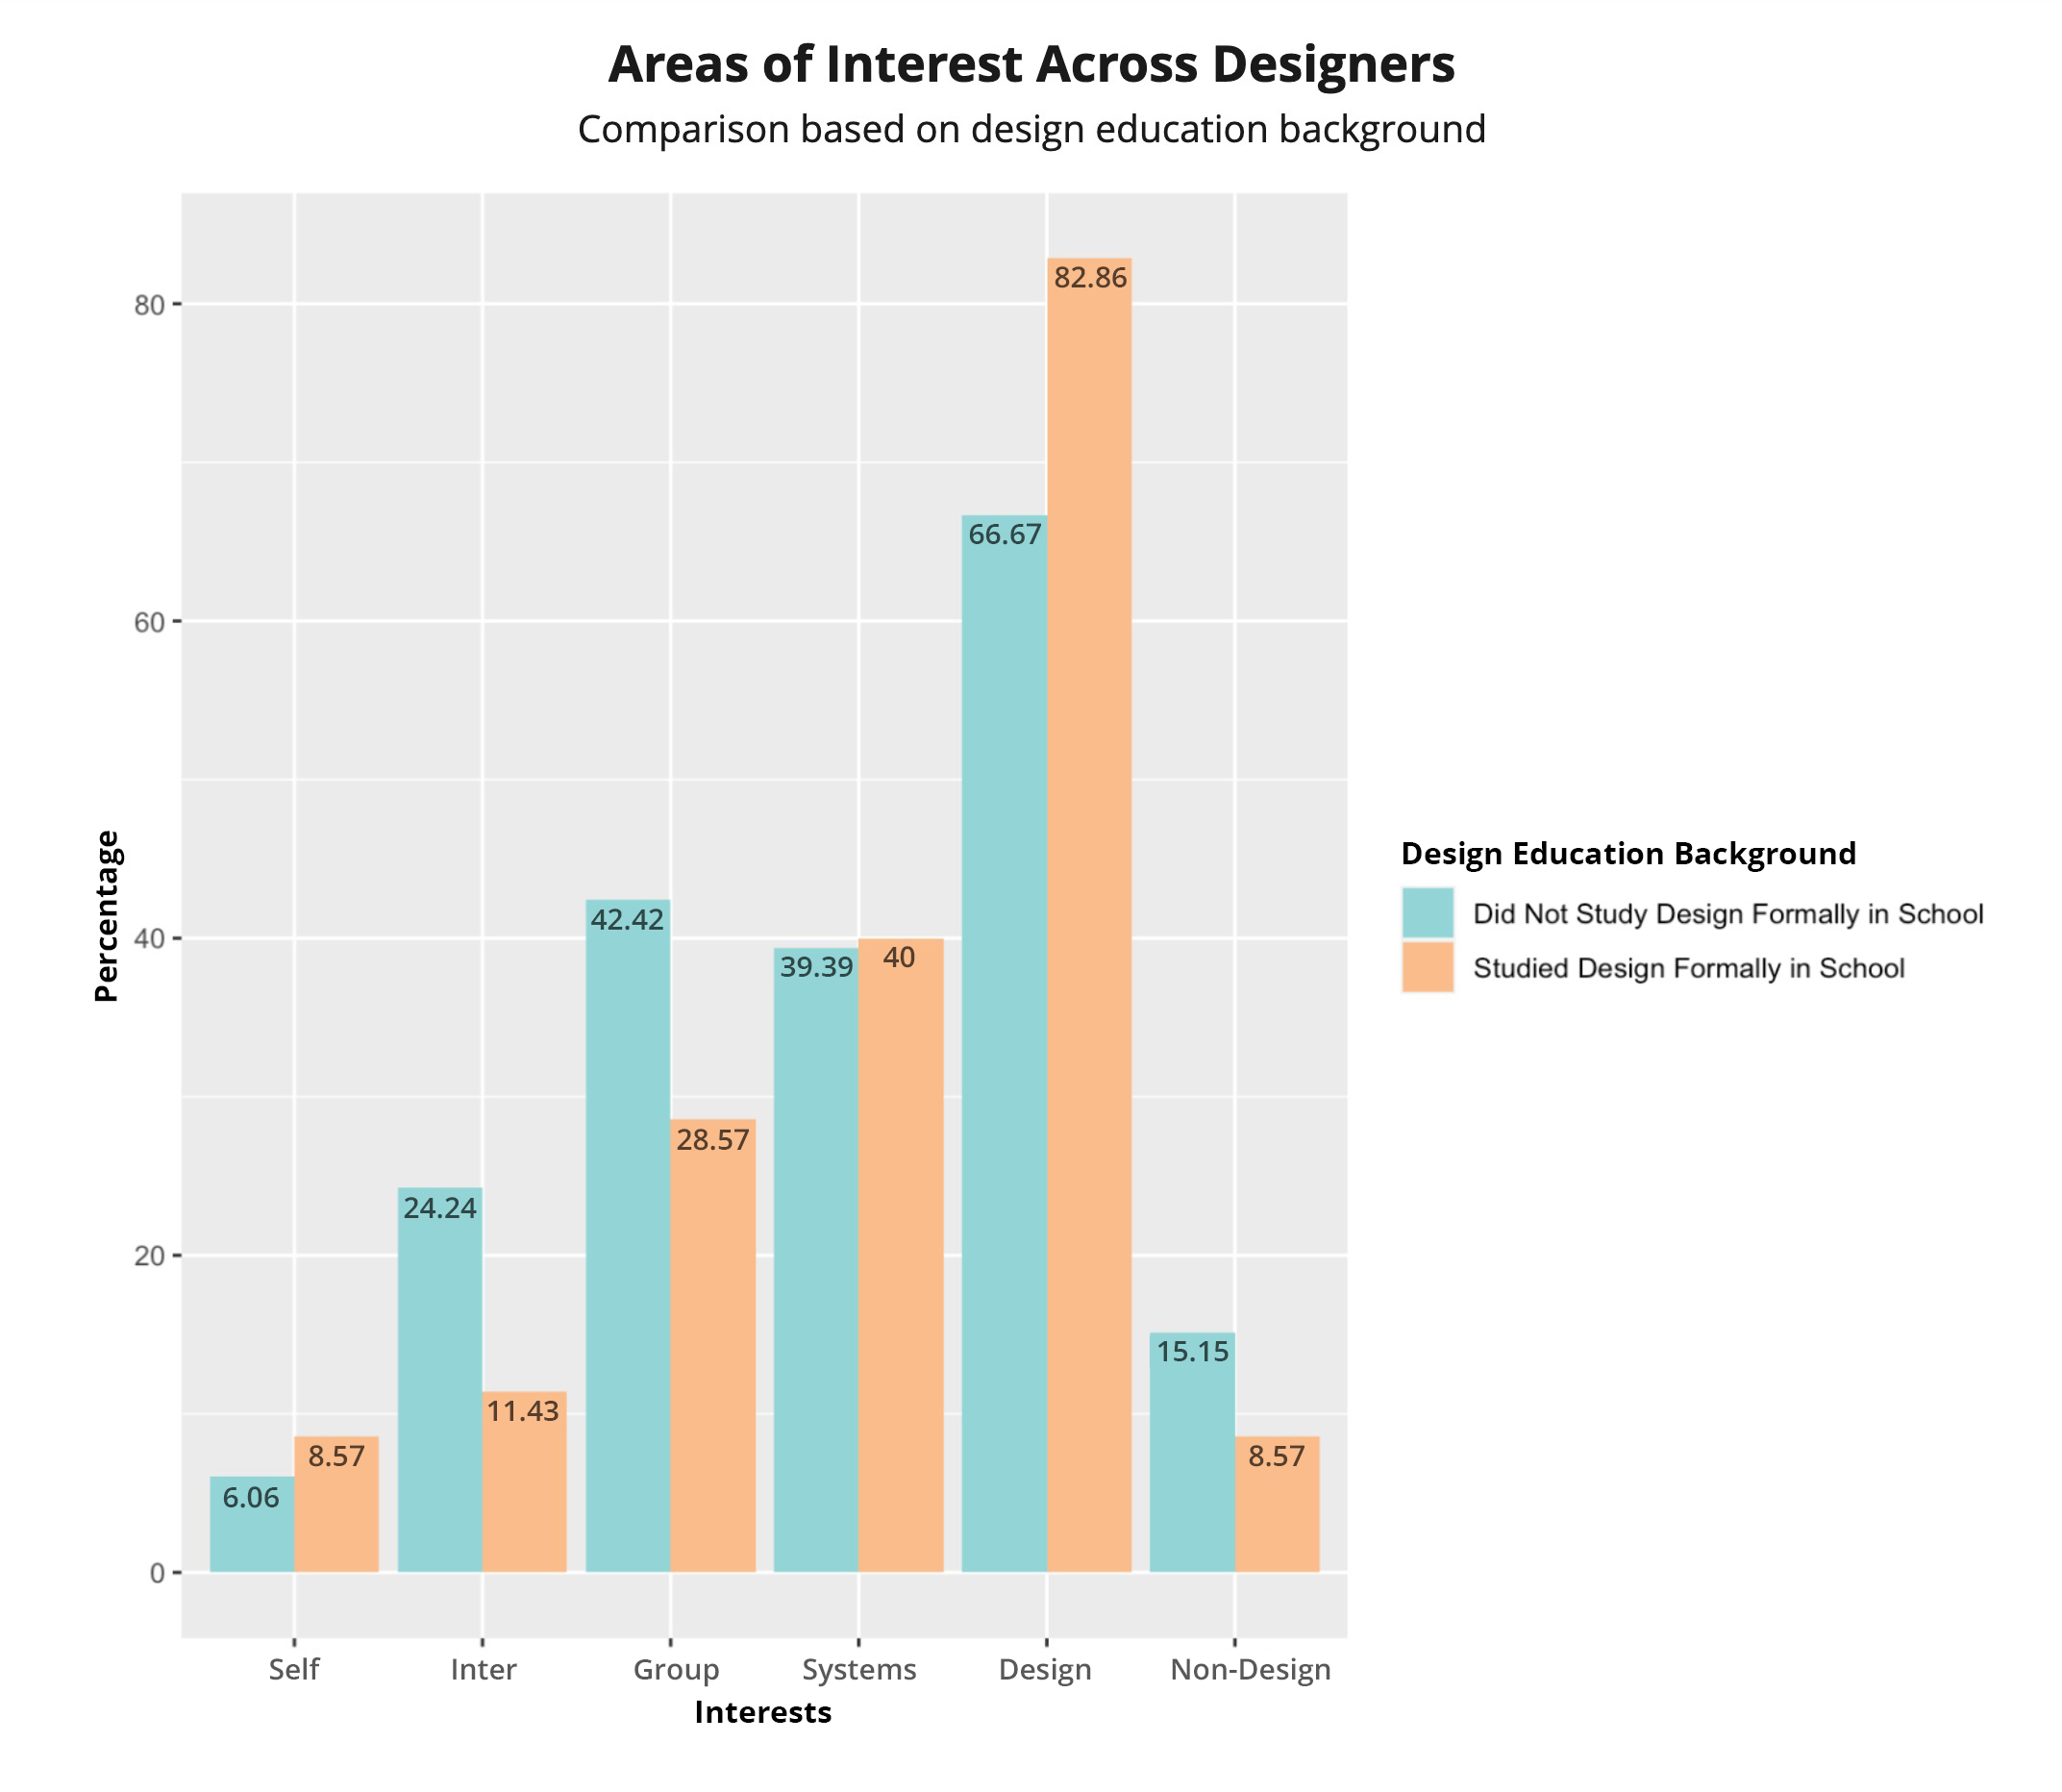 Area of Interest by Education Background